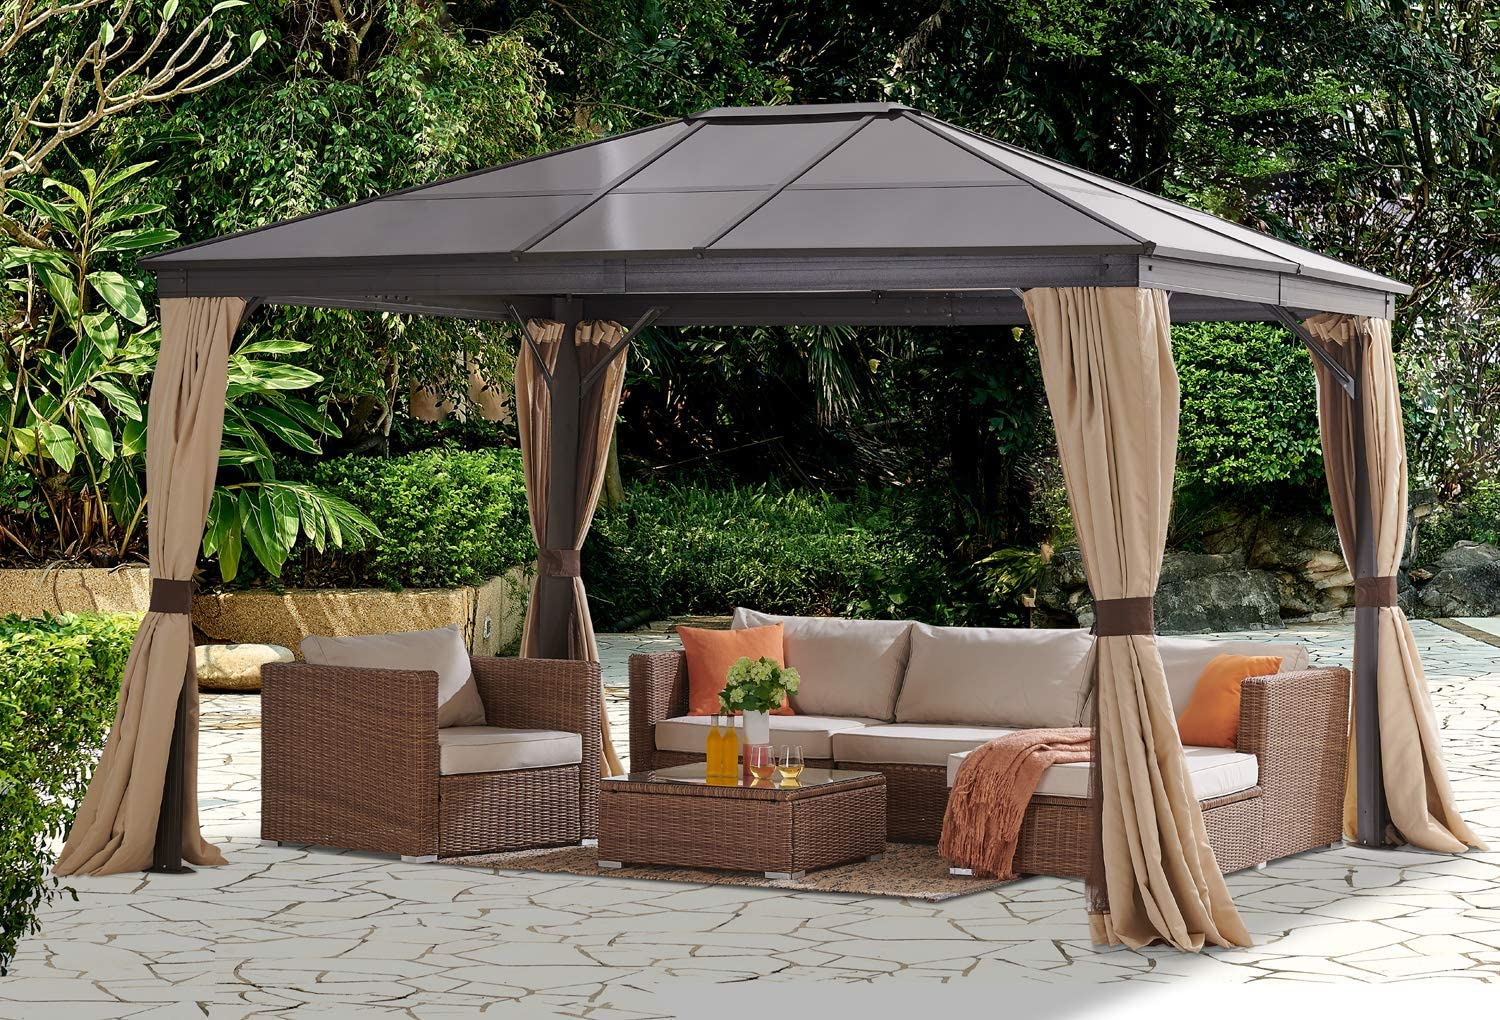 Amazon Com Barton 10 X 12 Hard Roof Outdoor Patio Gazebo Canopy Aluminum Poles Stand Backyard Hardtop Curtains And Netting Uv Resistant Beige Garden Outdoor